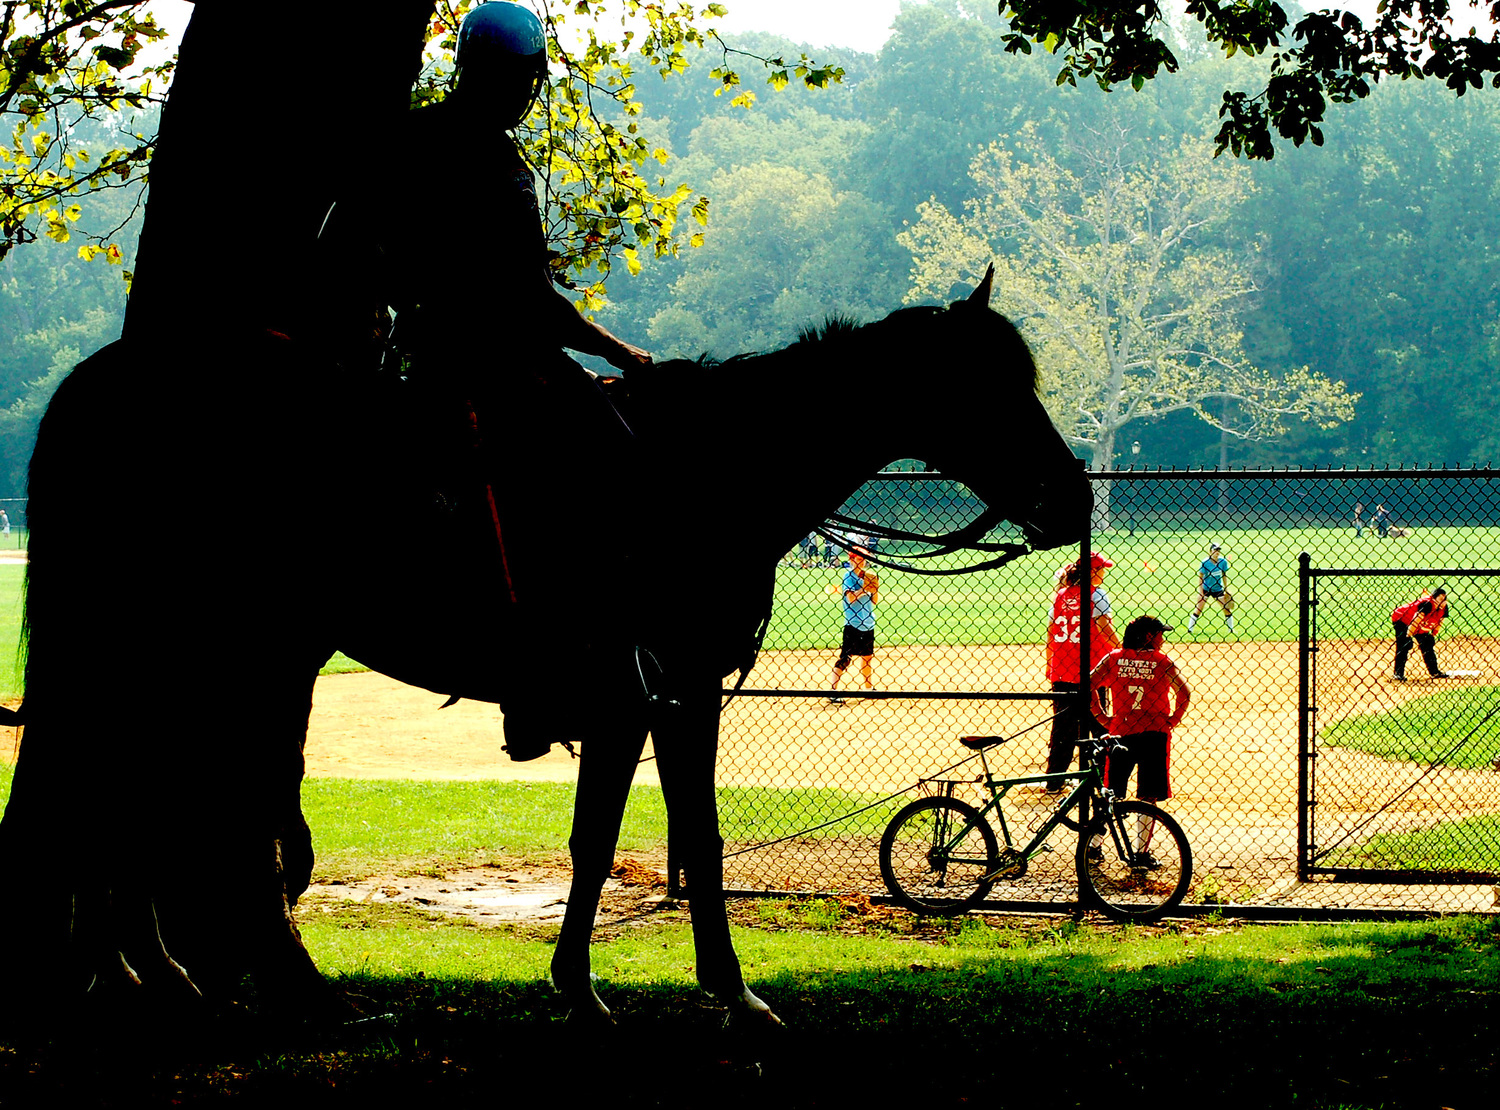 Horseback Riding in Prospect Park